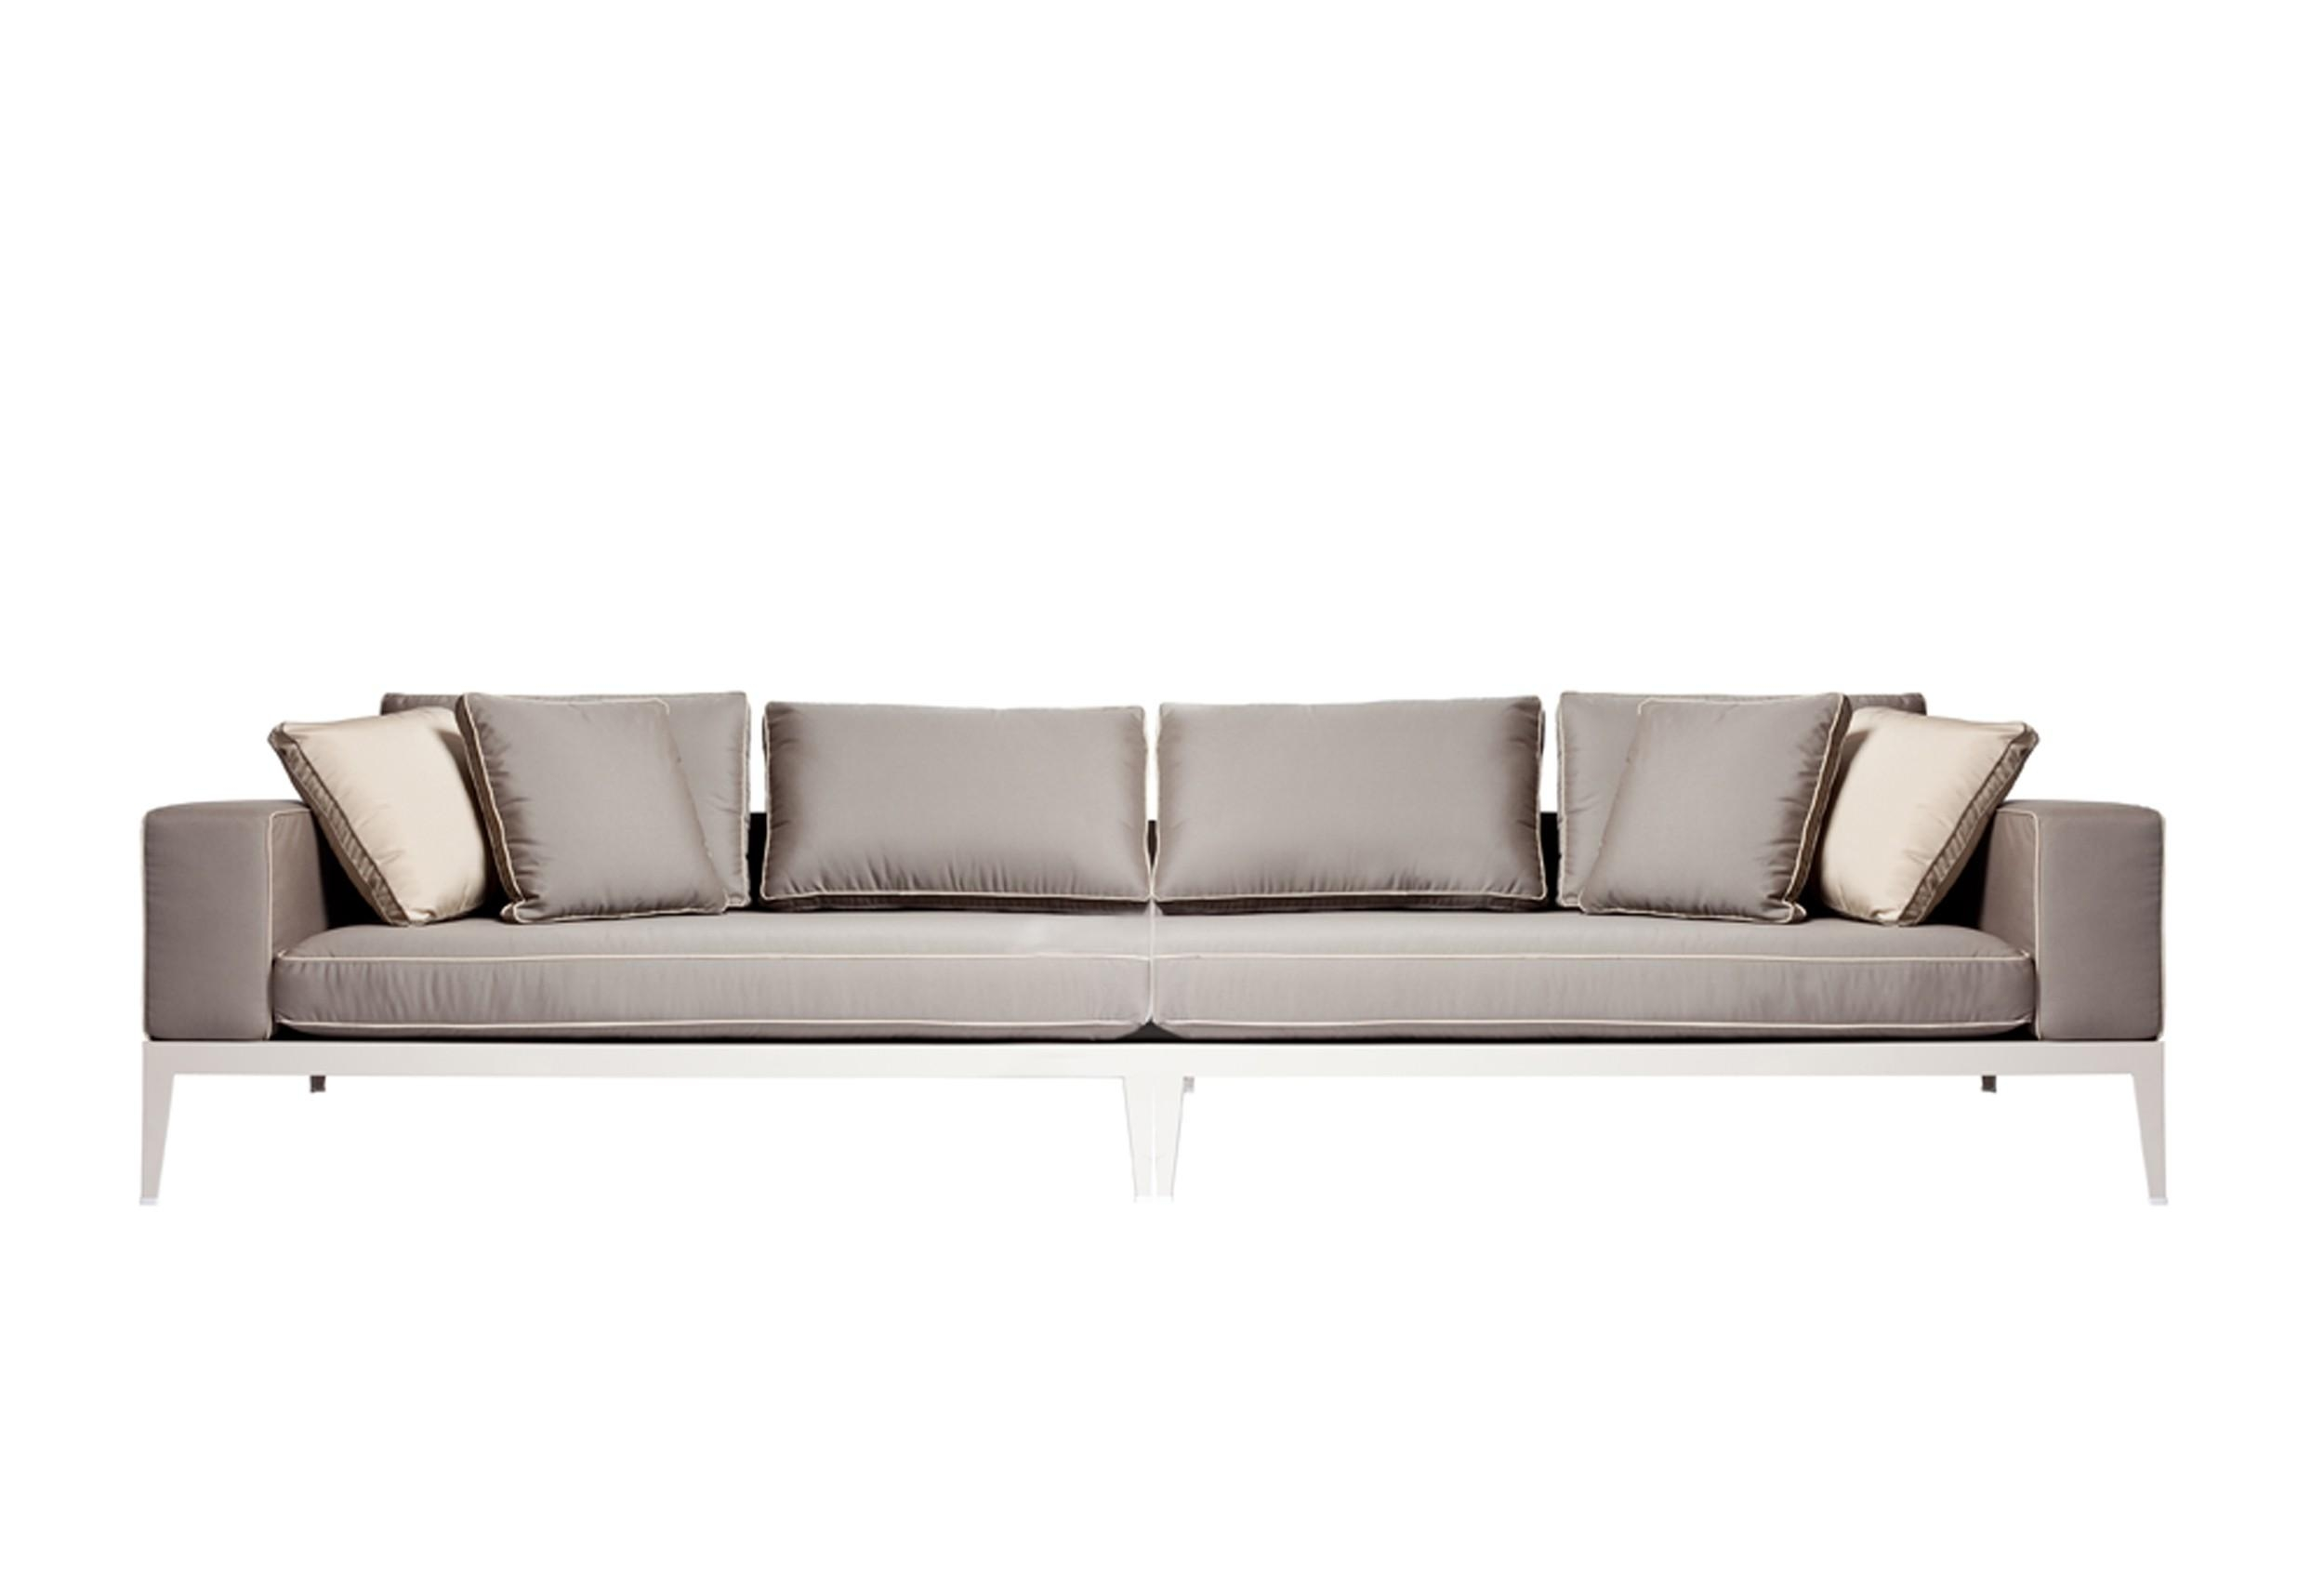 Balmoral 4 Seater Sofa | Viesso In 4 Seat Sofas (Image 7 of 20)